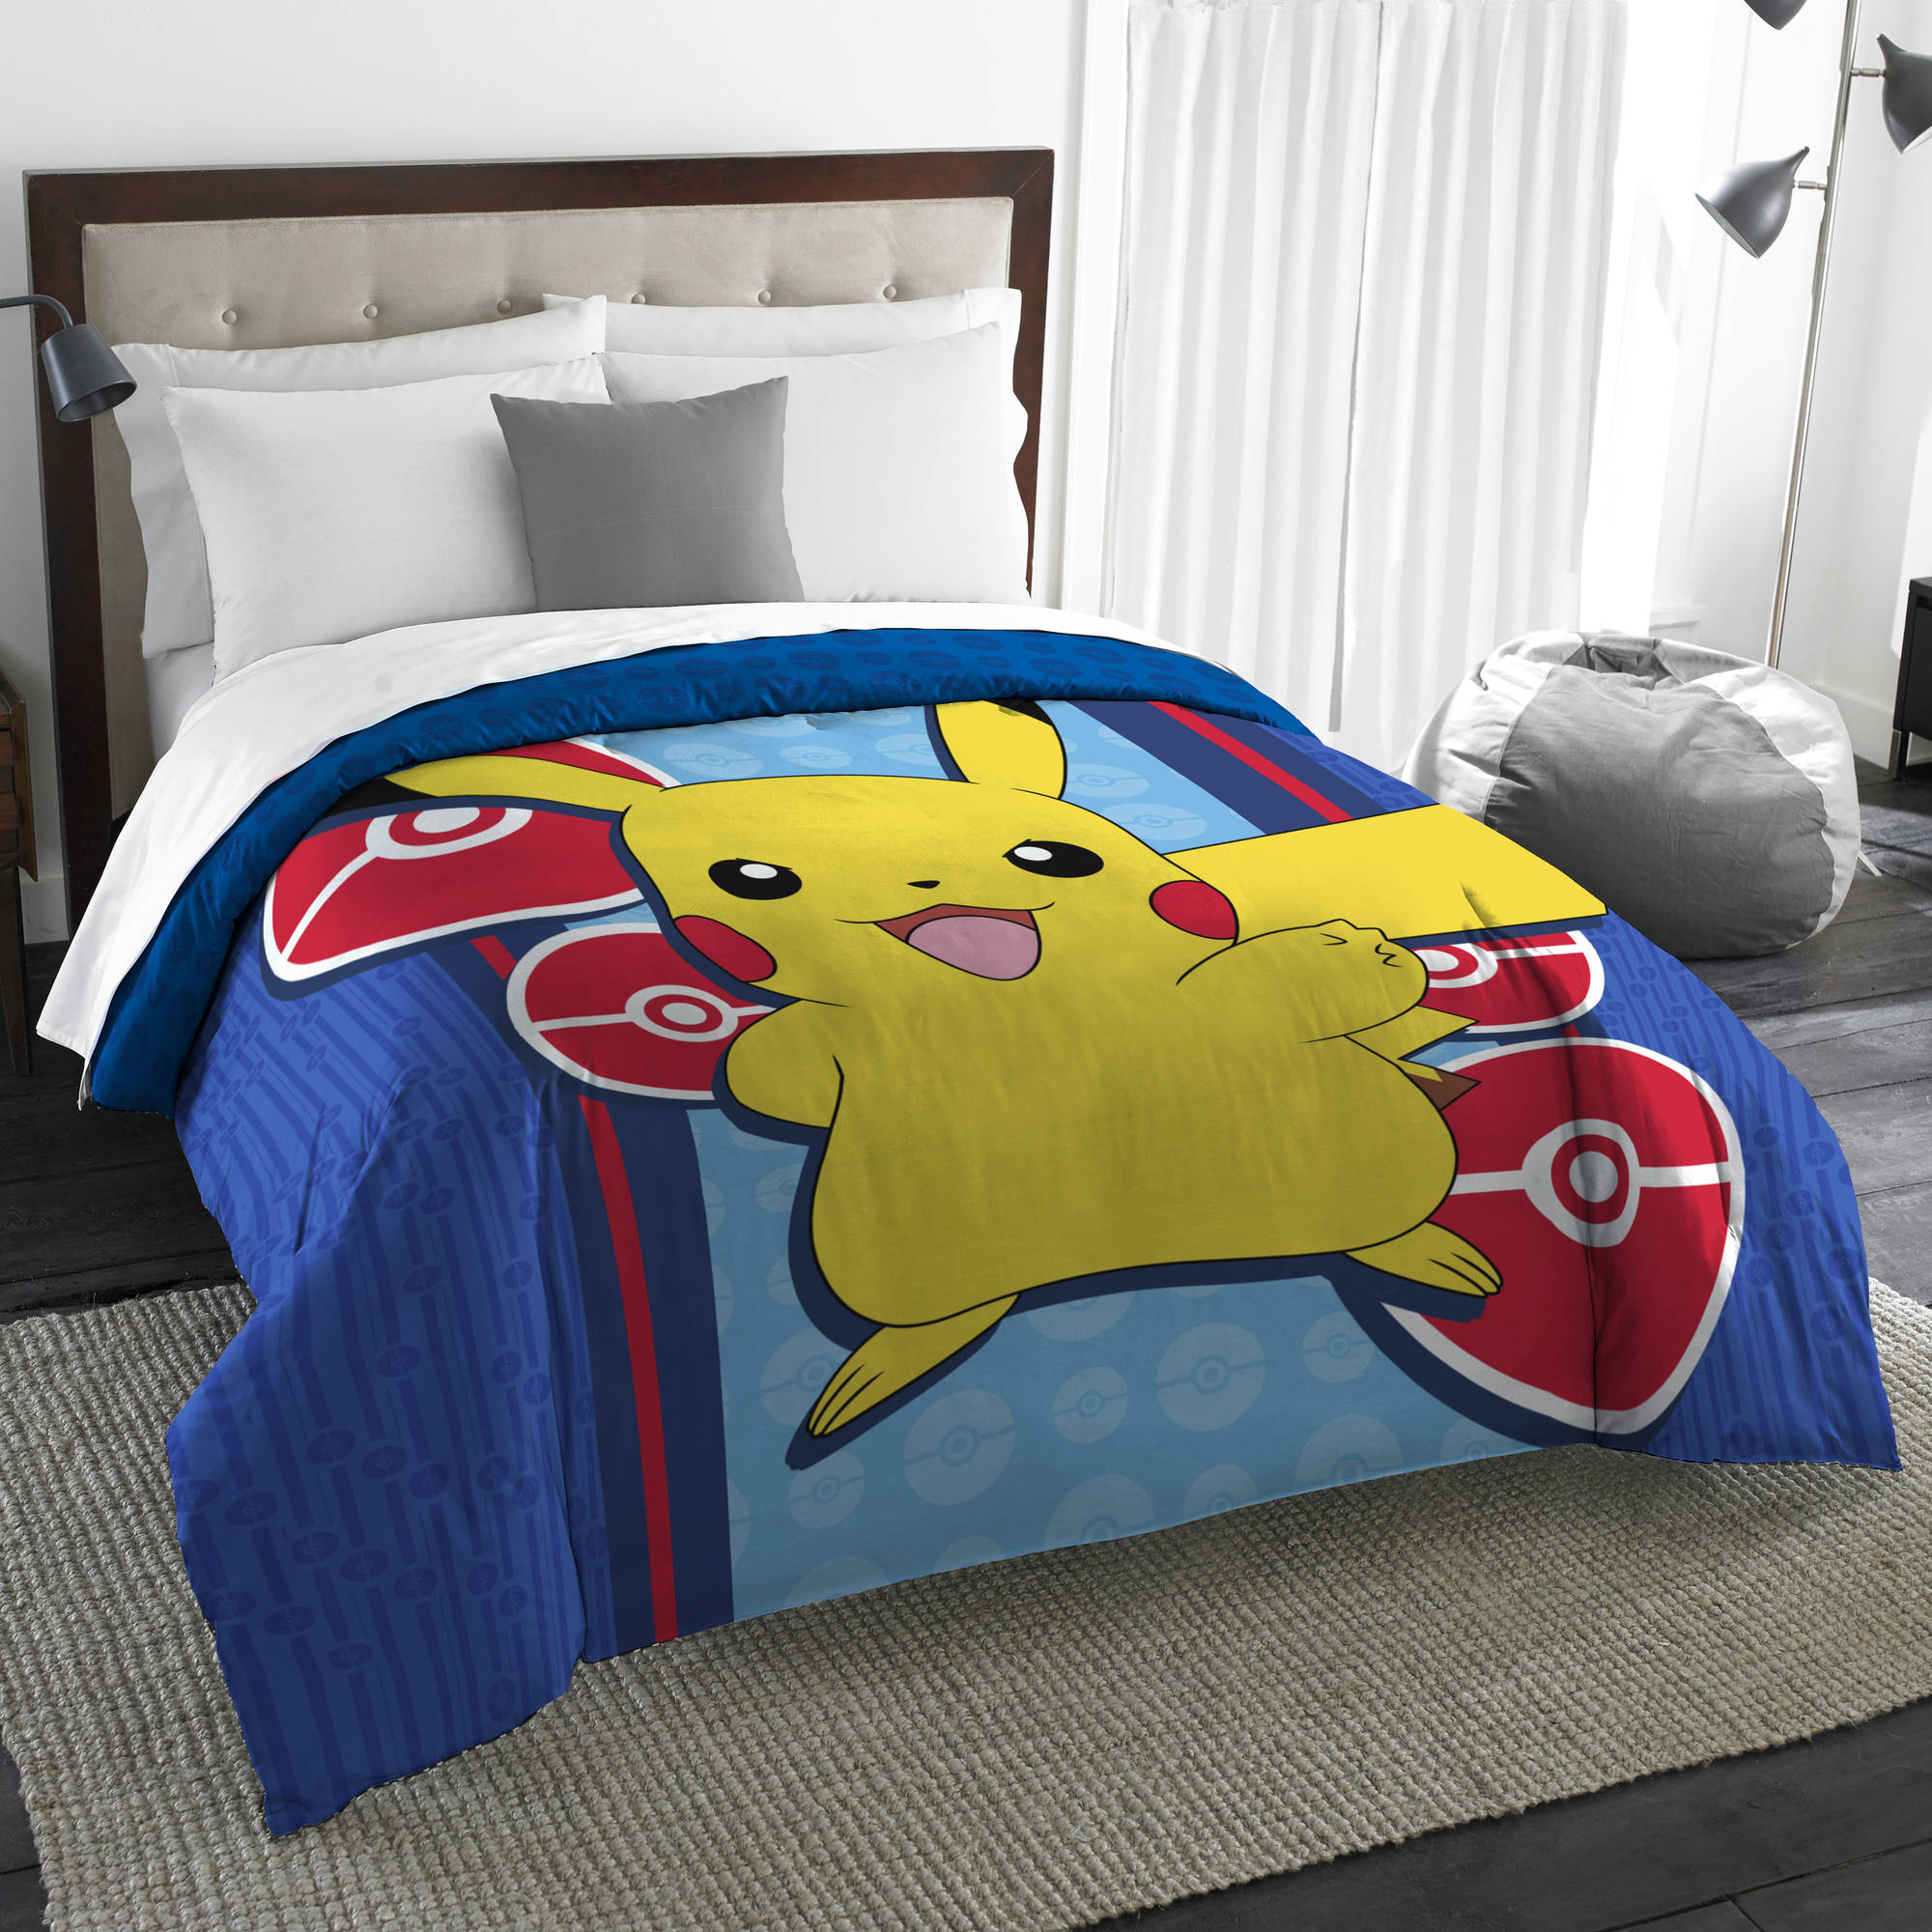 "Pokémon Electric Ignite 72"" x 86"" Twin Full Comforter Set, 1 Each"